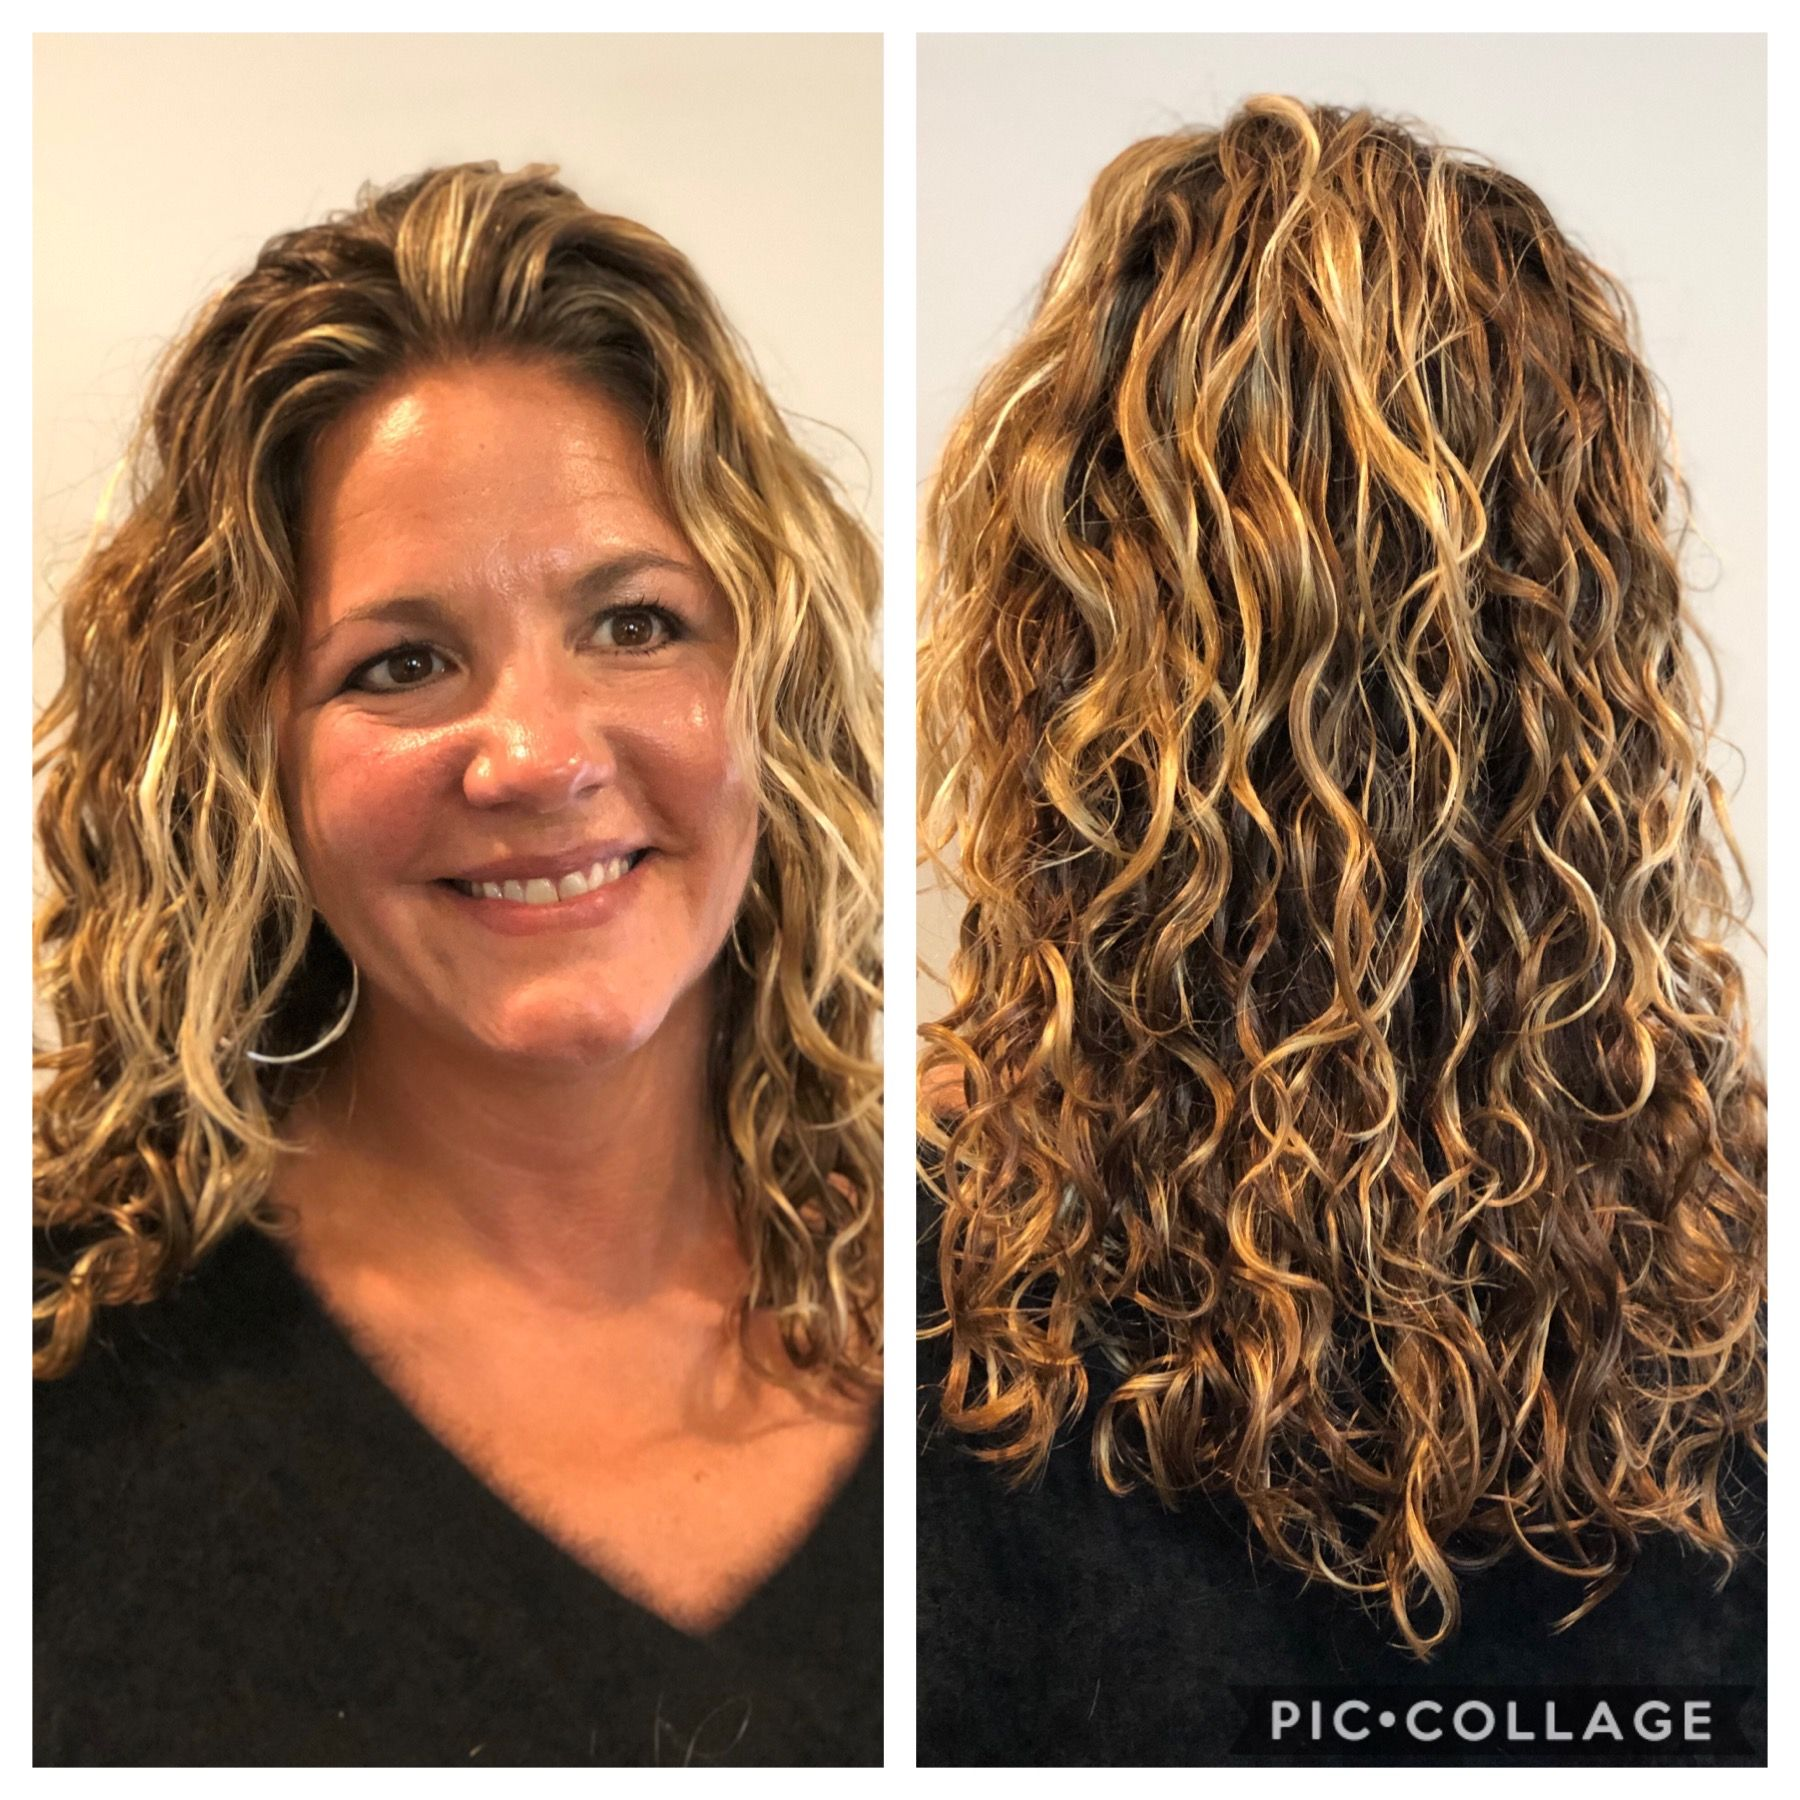 Ouidad Embrace Those Curls In 2020 Curly Hair Salon Curly Hair Styles Hair